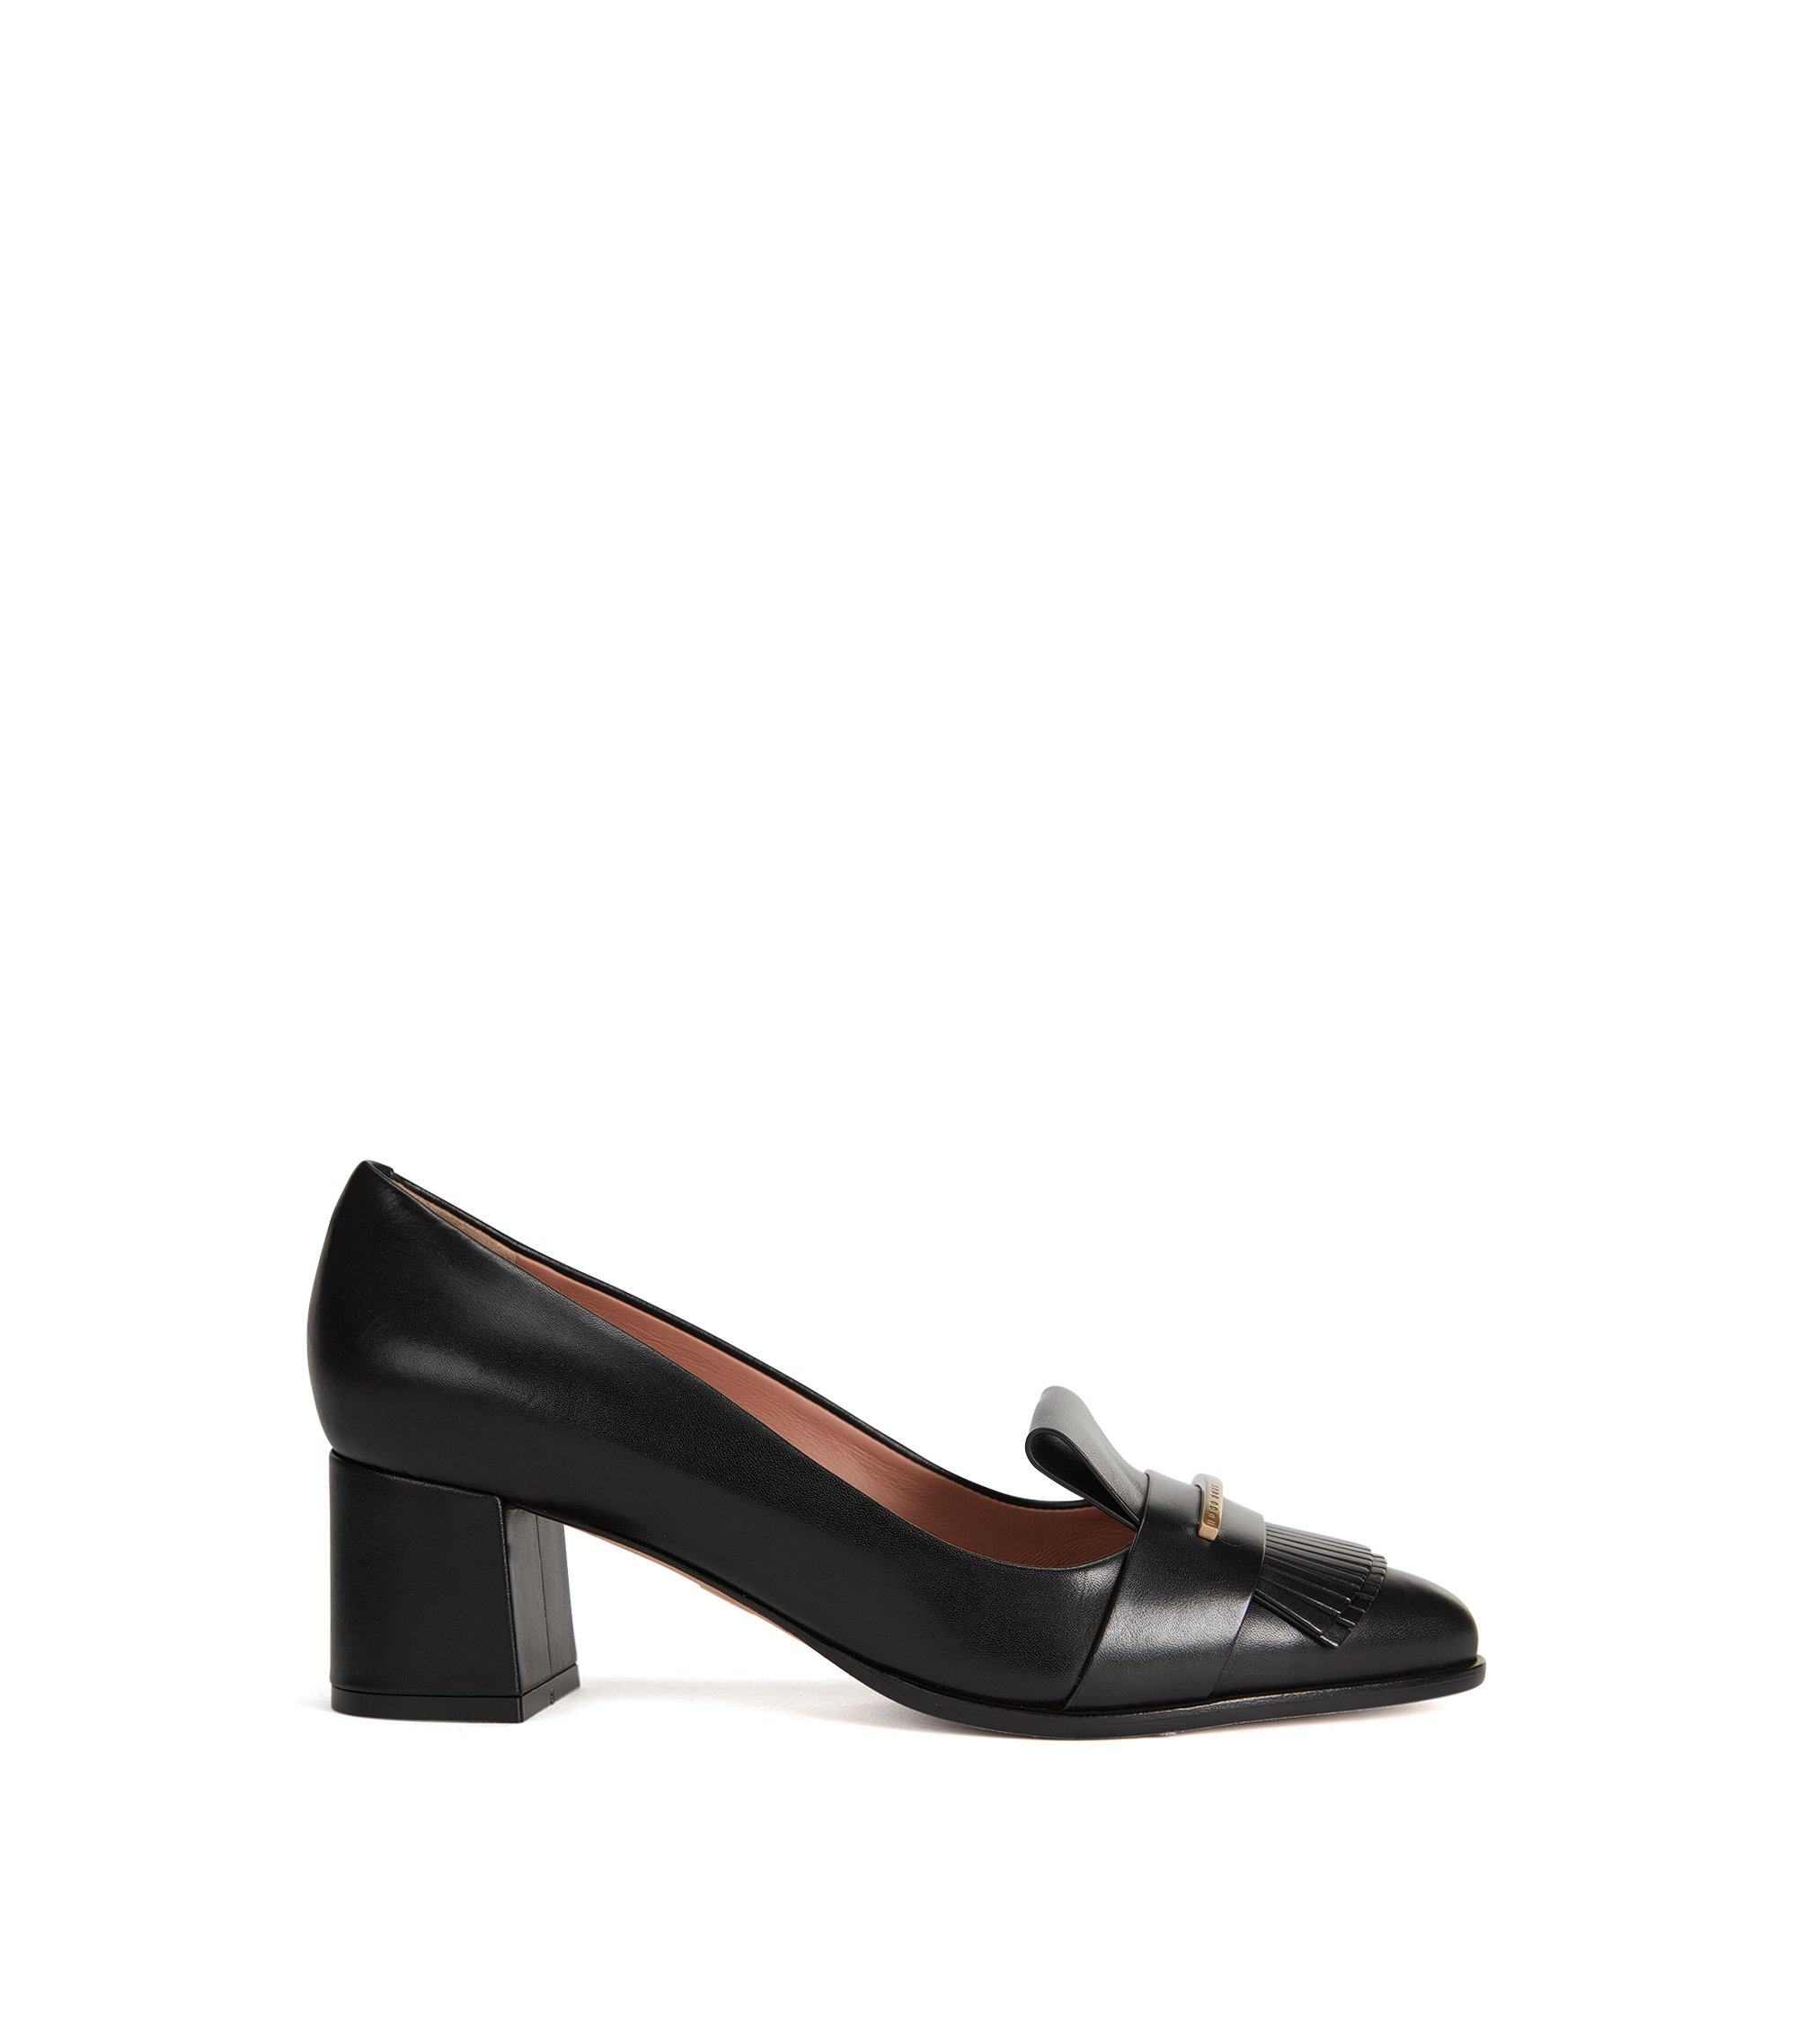 Fringed Italian Leather Pump | Buckle Pump, Black